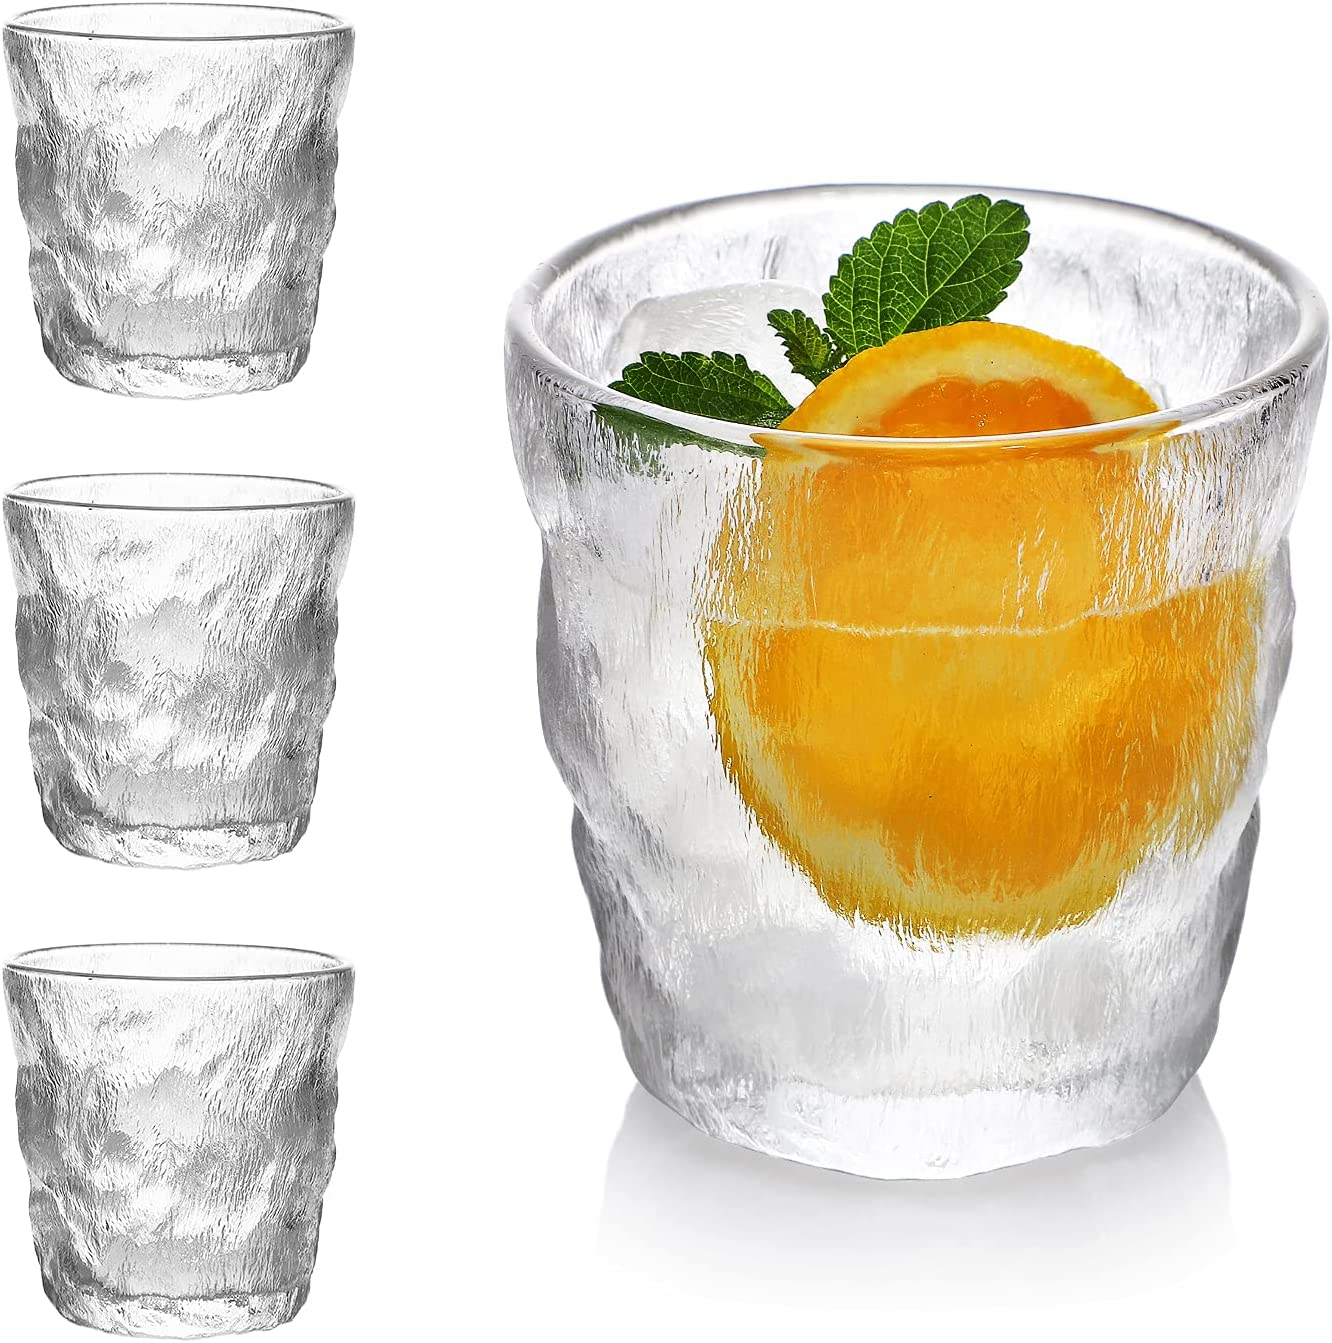 Drinking Glasses Set of 4 Highball Water Max Manufacturer direct delivery 48% OFF Oz. Glass Moder Cups 12